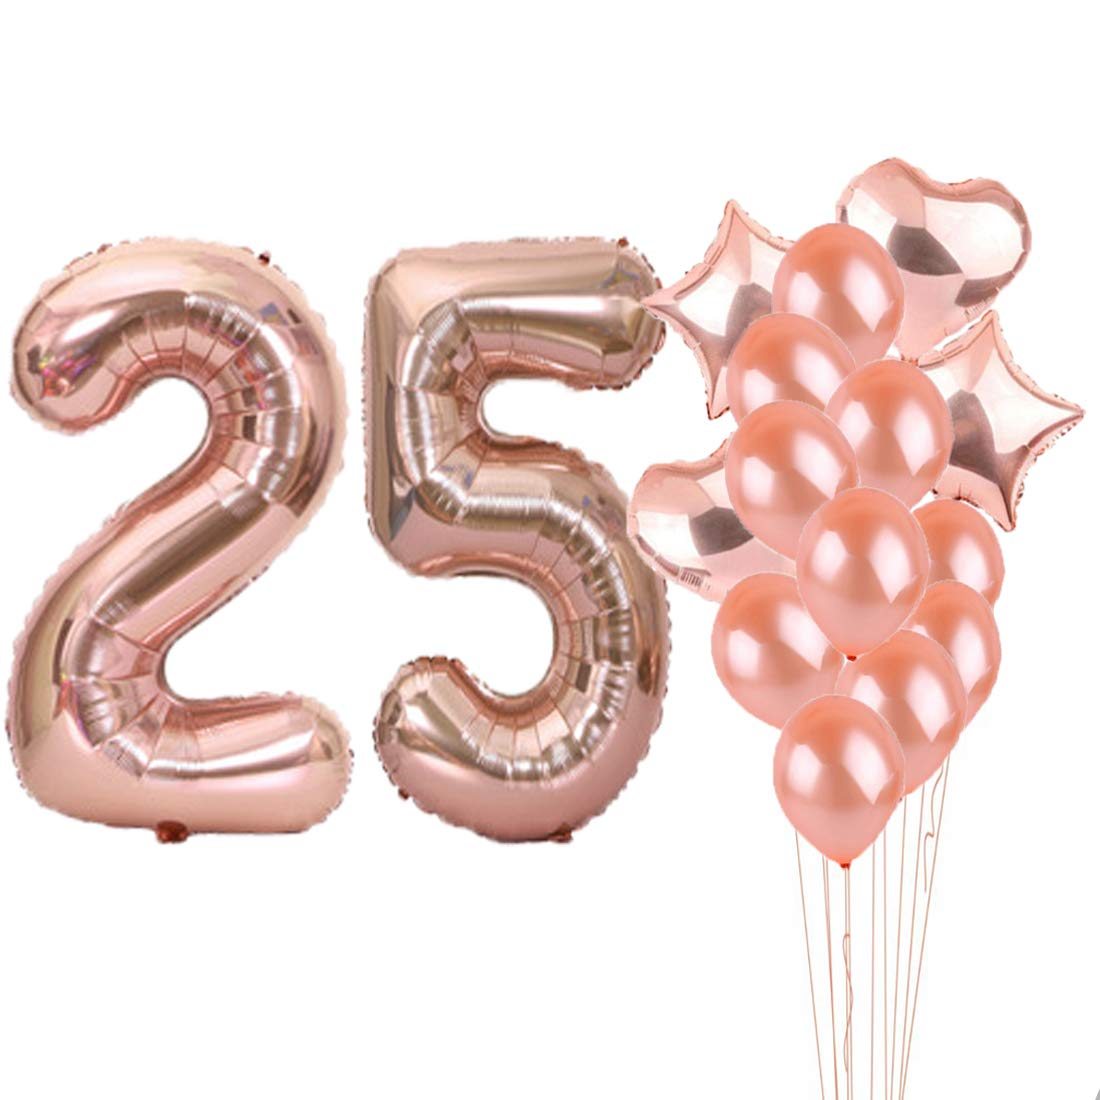 25th Birthday Decorations Party Supplies25th Balloons Rose GoldNumber 25 Mylar BalloonLatex Balloon DecorationGreat Sweet Gifts